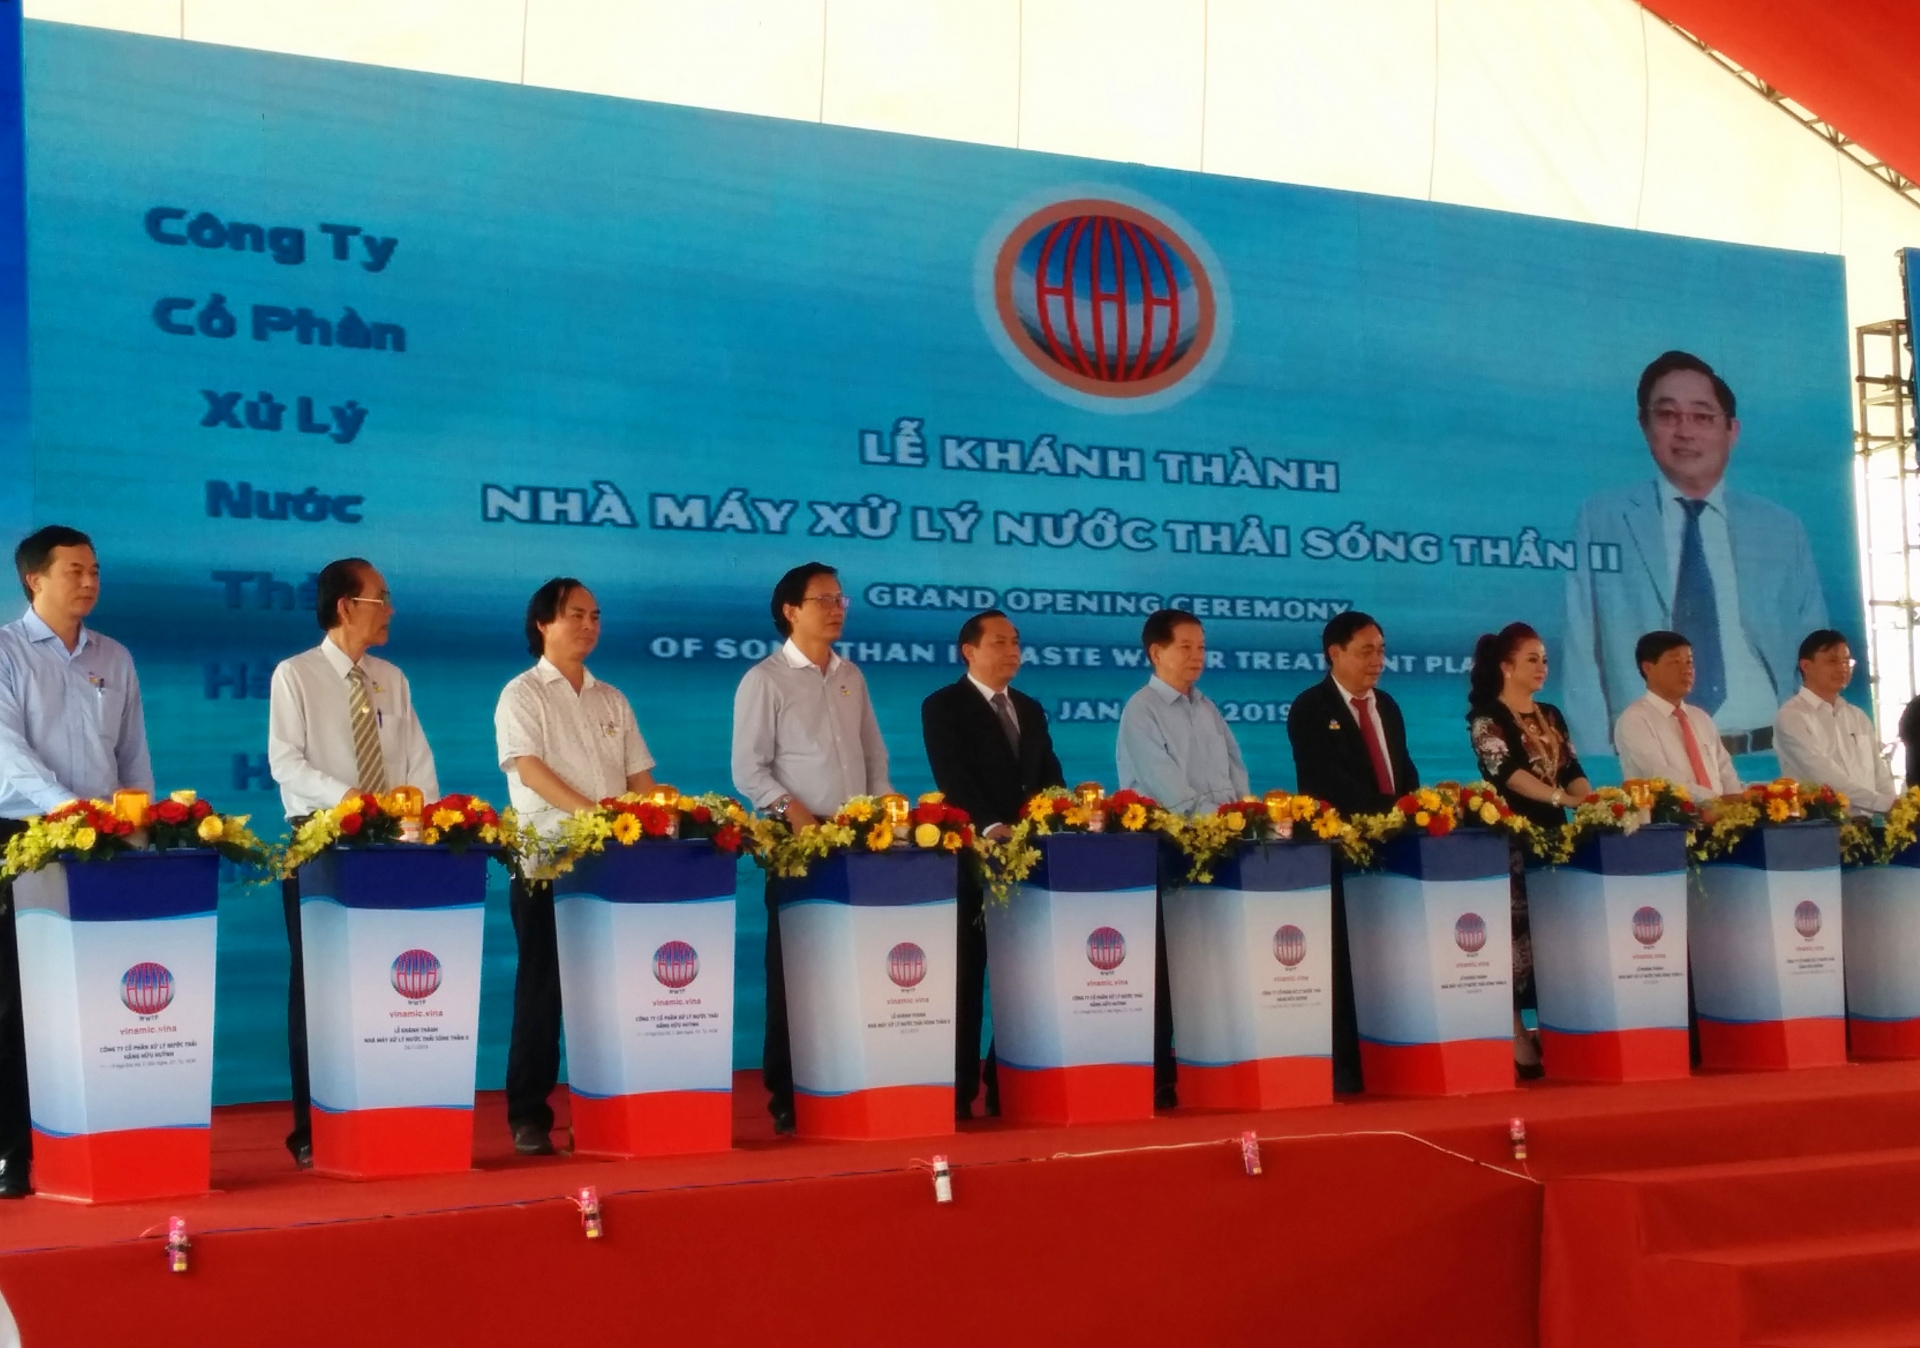 grand opening of song than ii wastewater treatment plant in binh duong